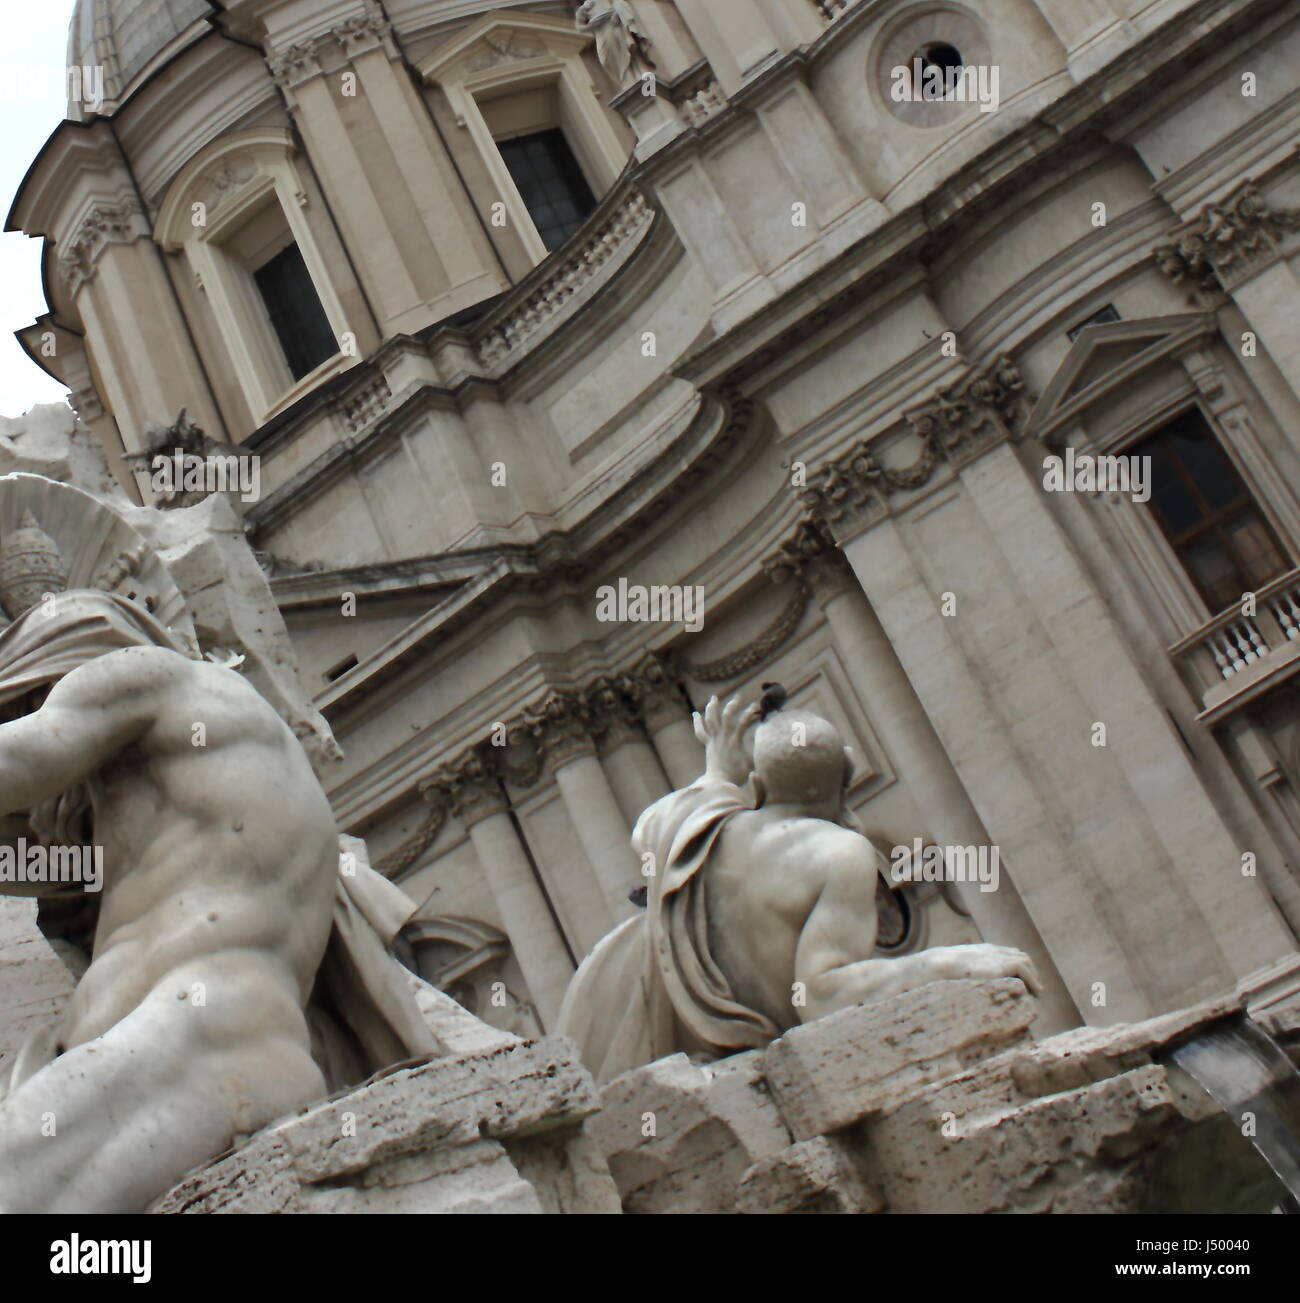 Close-up of the Fountain of the Four Rivers (Fontana dei Quattro Fiumi) with Sant'Agnese in Agone in the background, Stock Photo